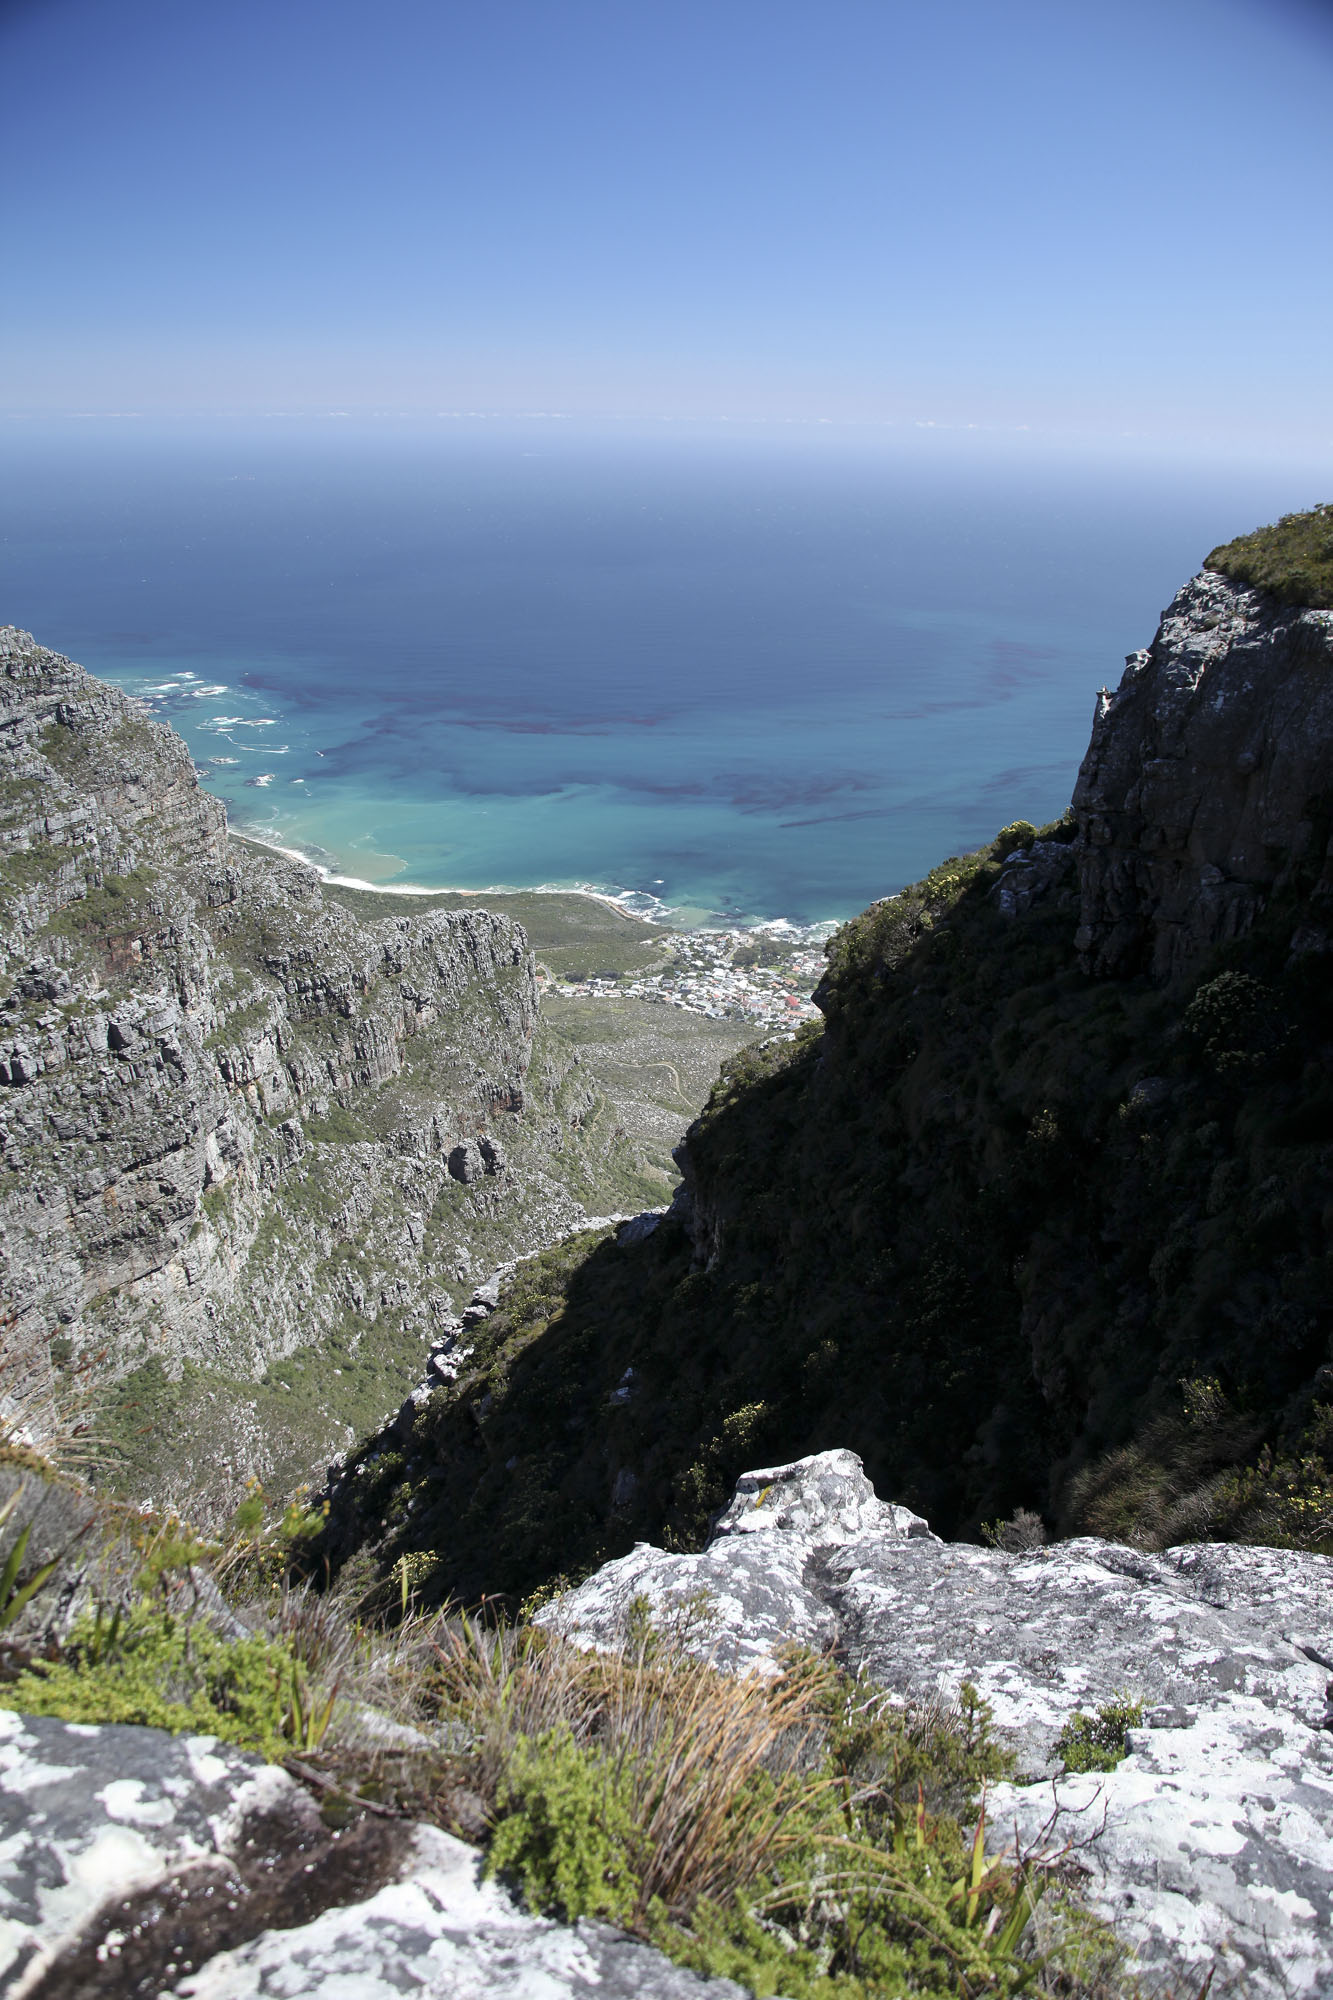 A view of Camps Bay from the top of Table Mountain